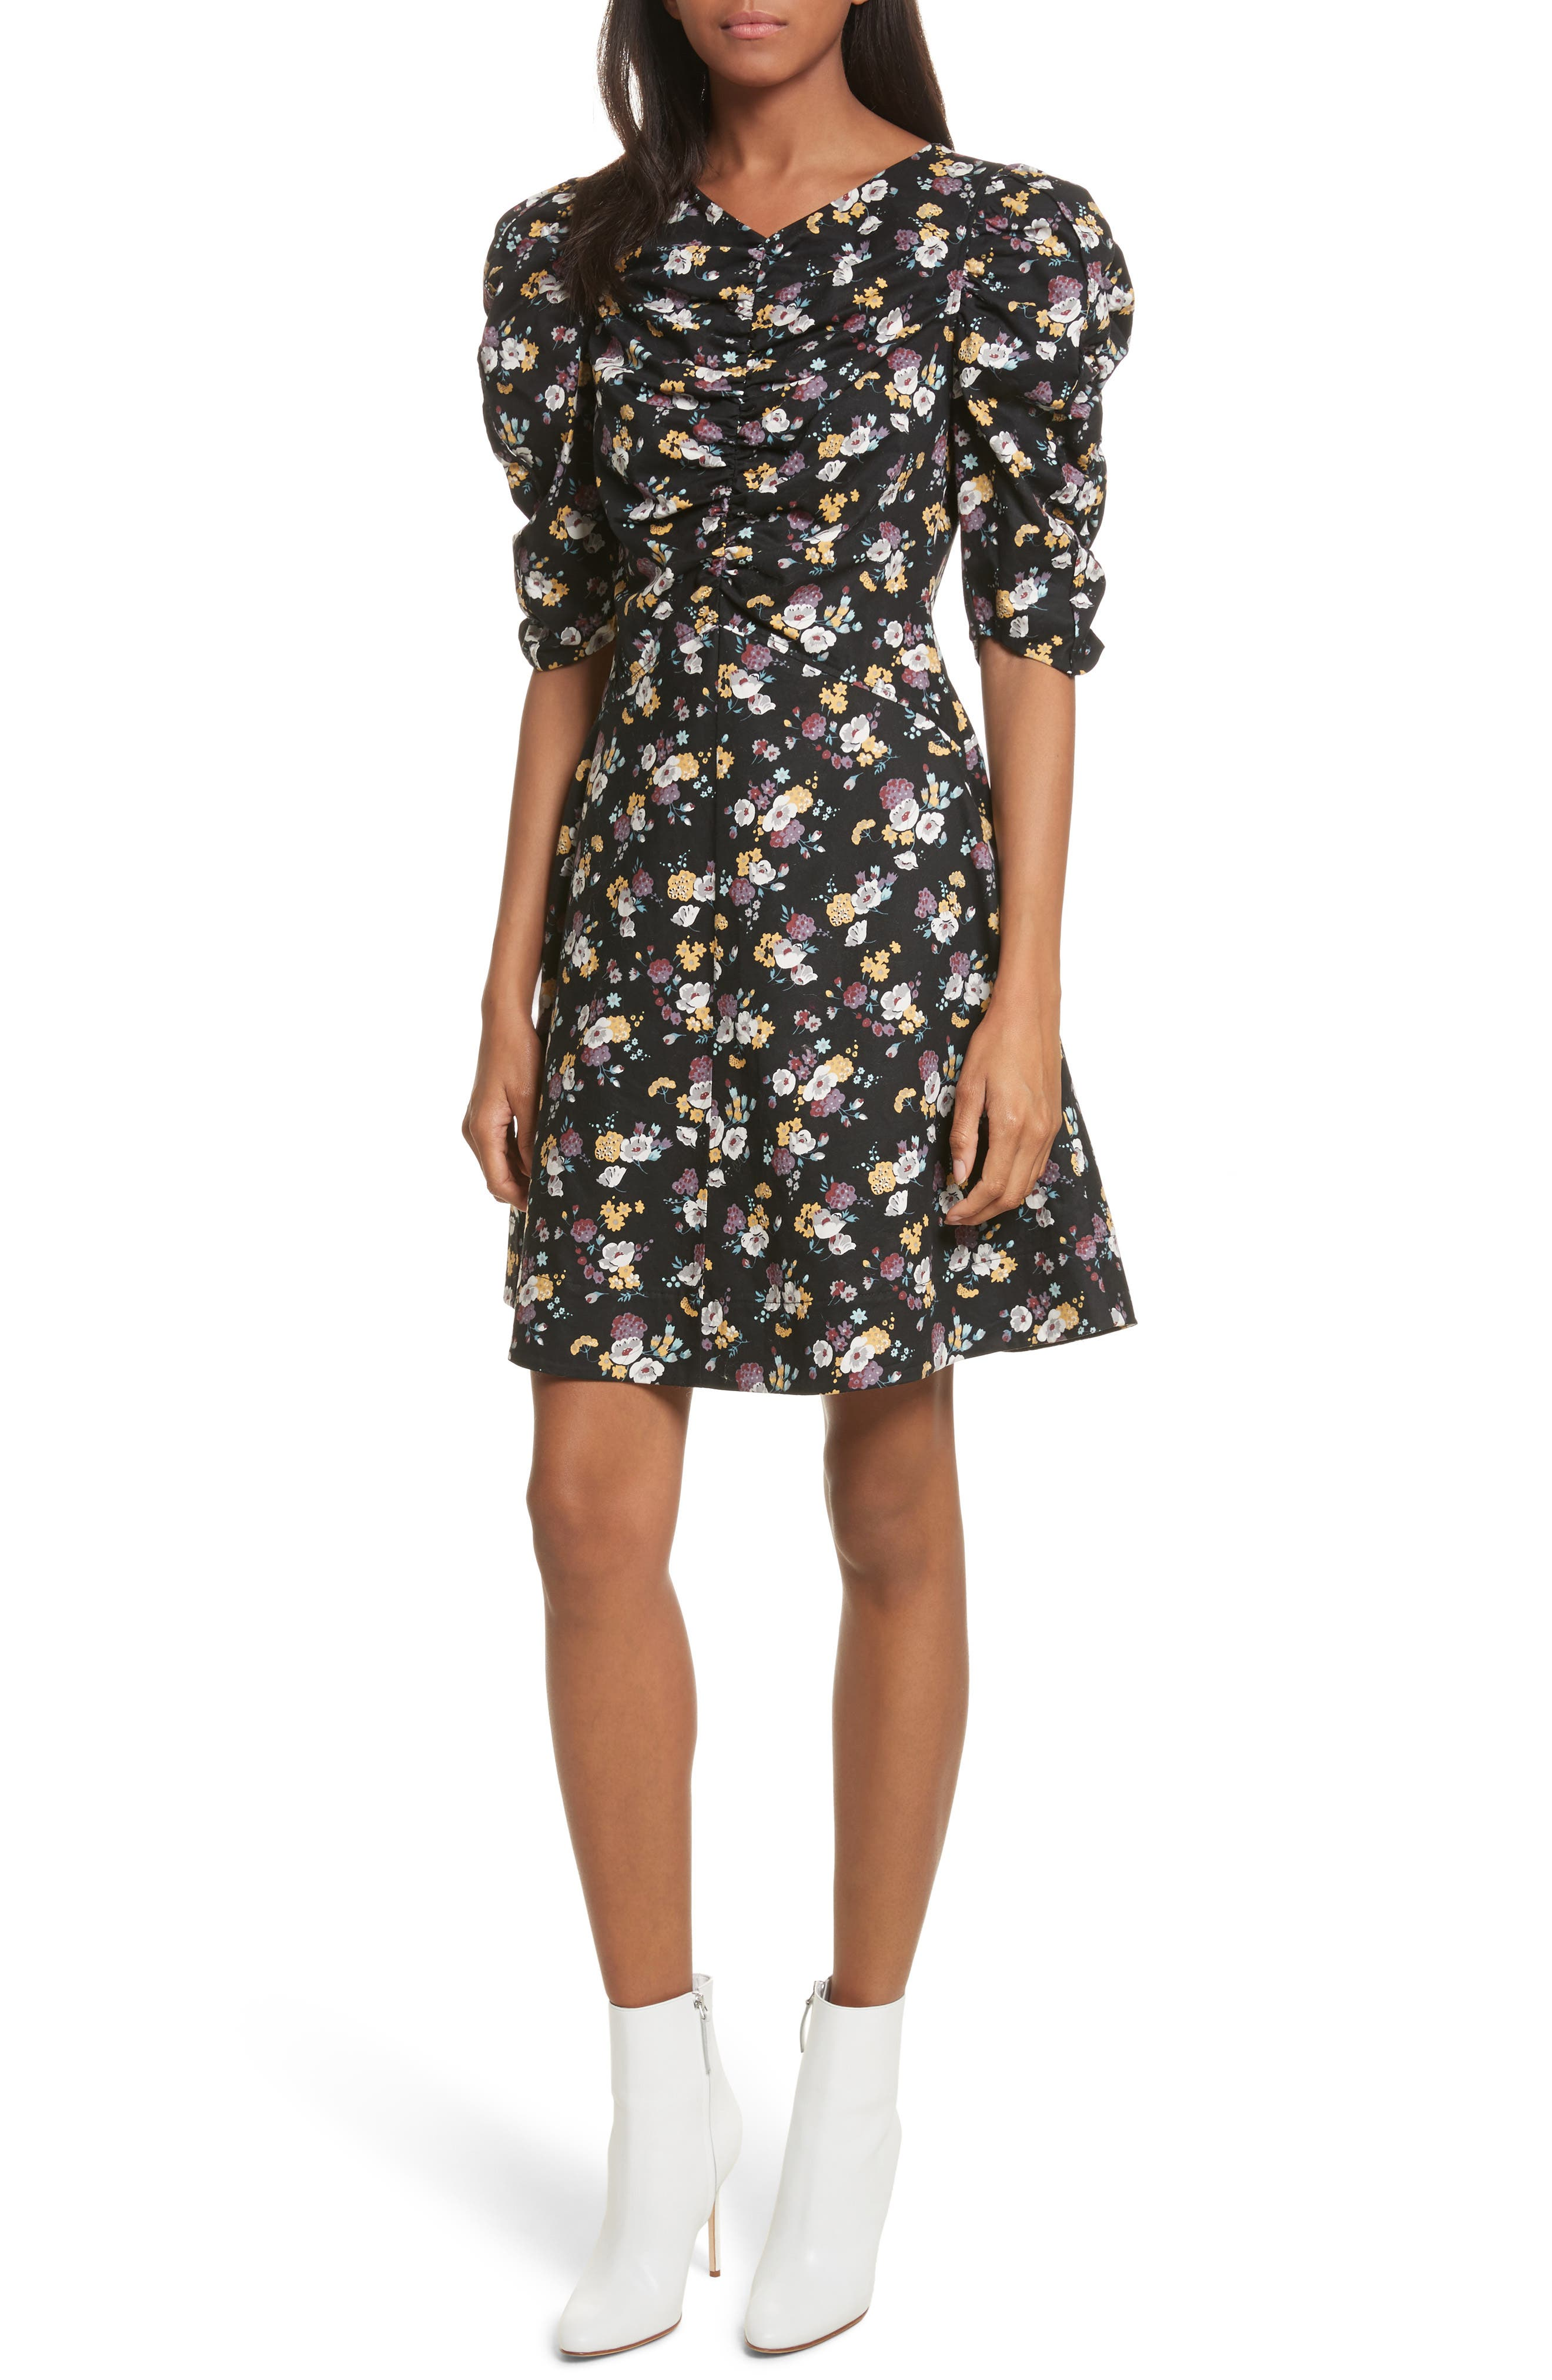 La Vie Rebecca Taylor Winter Posey Fit & Flare Dress